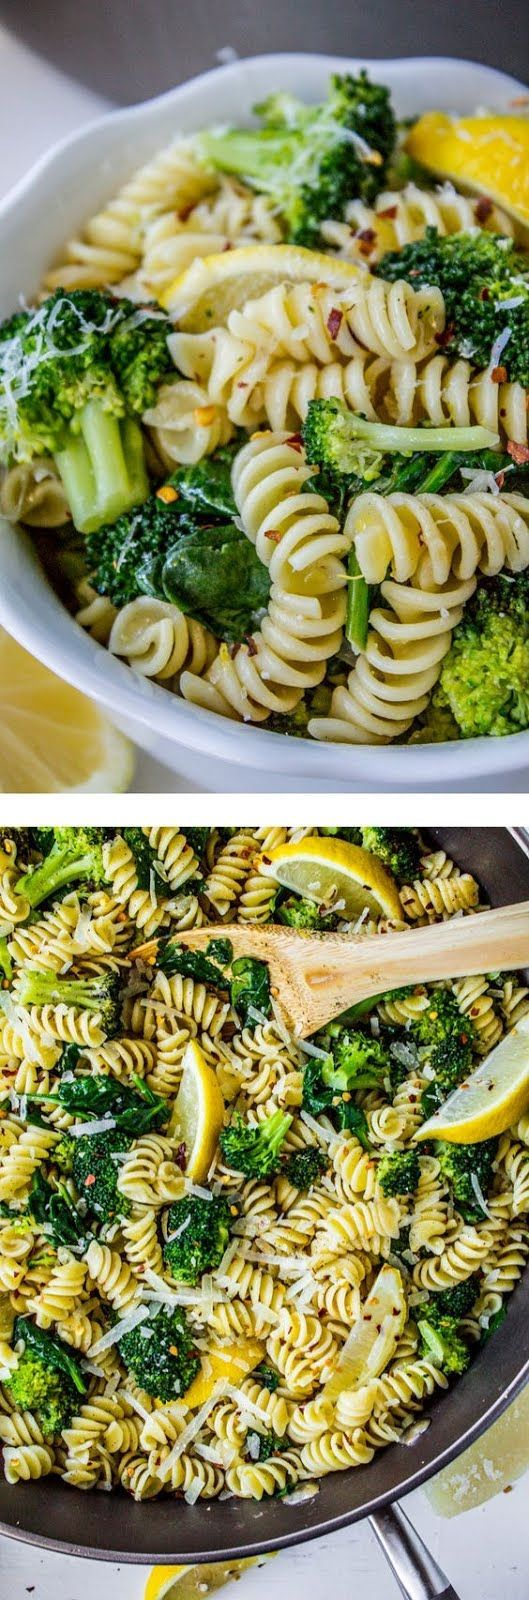 If you need a go-to pasta recipe, 20 Minute Lemon Broccoli Pasta Skillet is it!